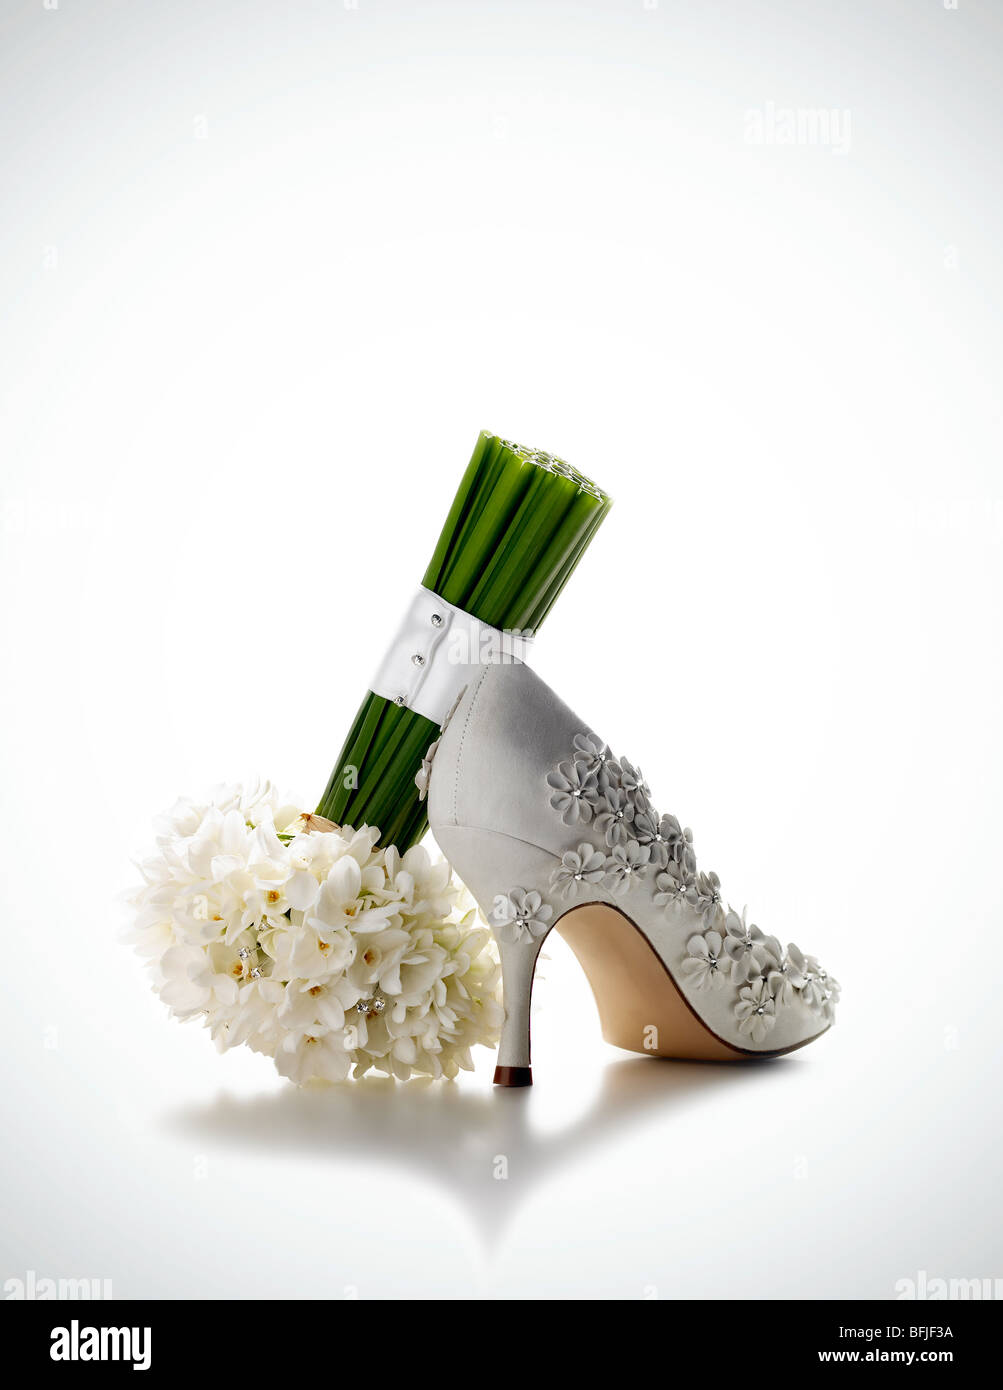 bridal shoe and flowers - Stock Image